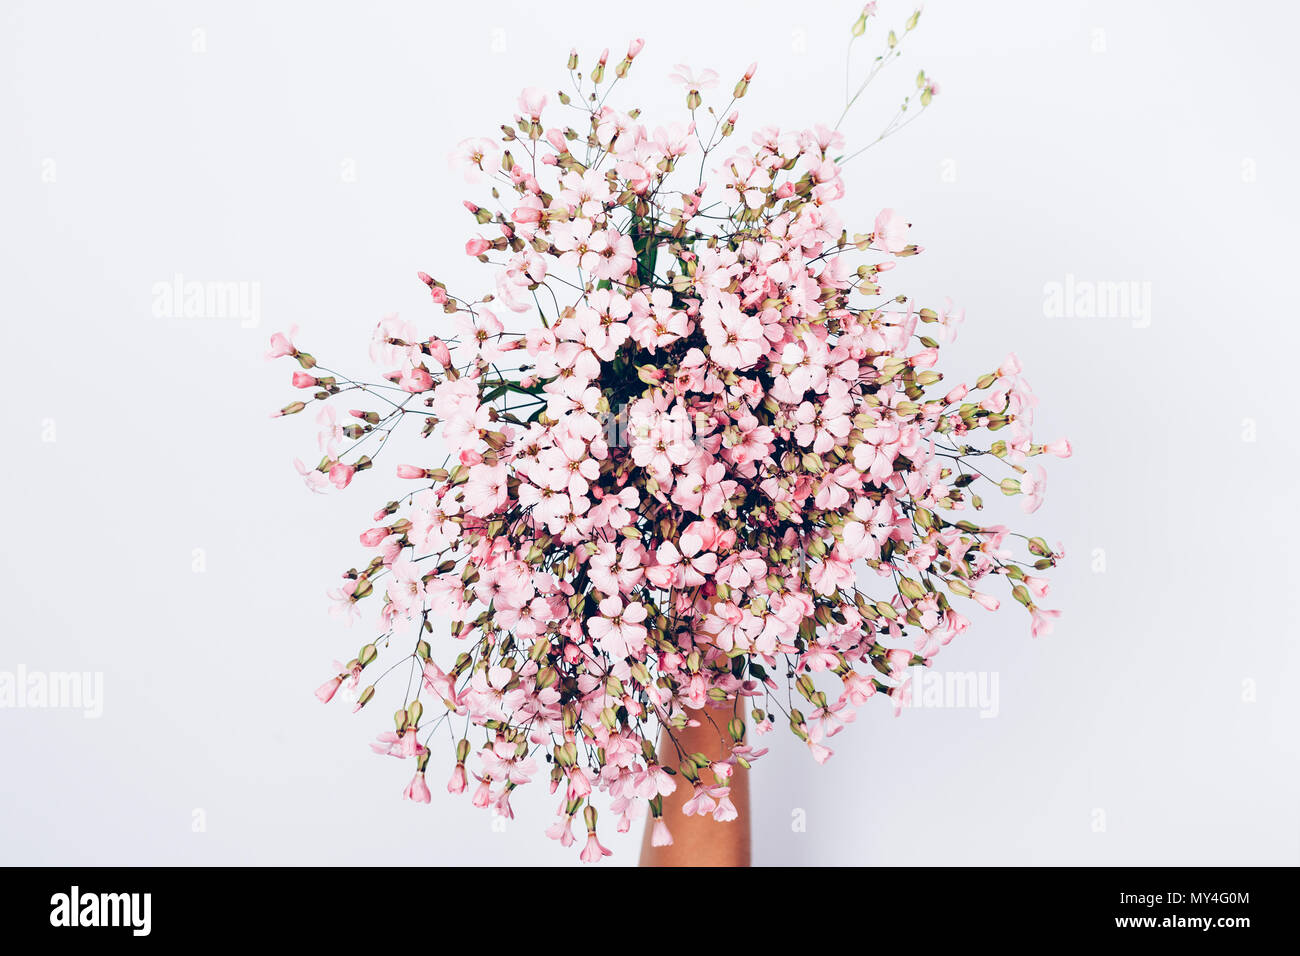 Female S Hand Holding Bouquet Of Pink Wildflowers On White Background Top View Festive Flat Lay Floral Composition Stock Photo Alamy